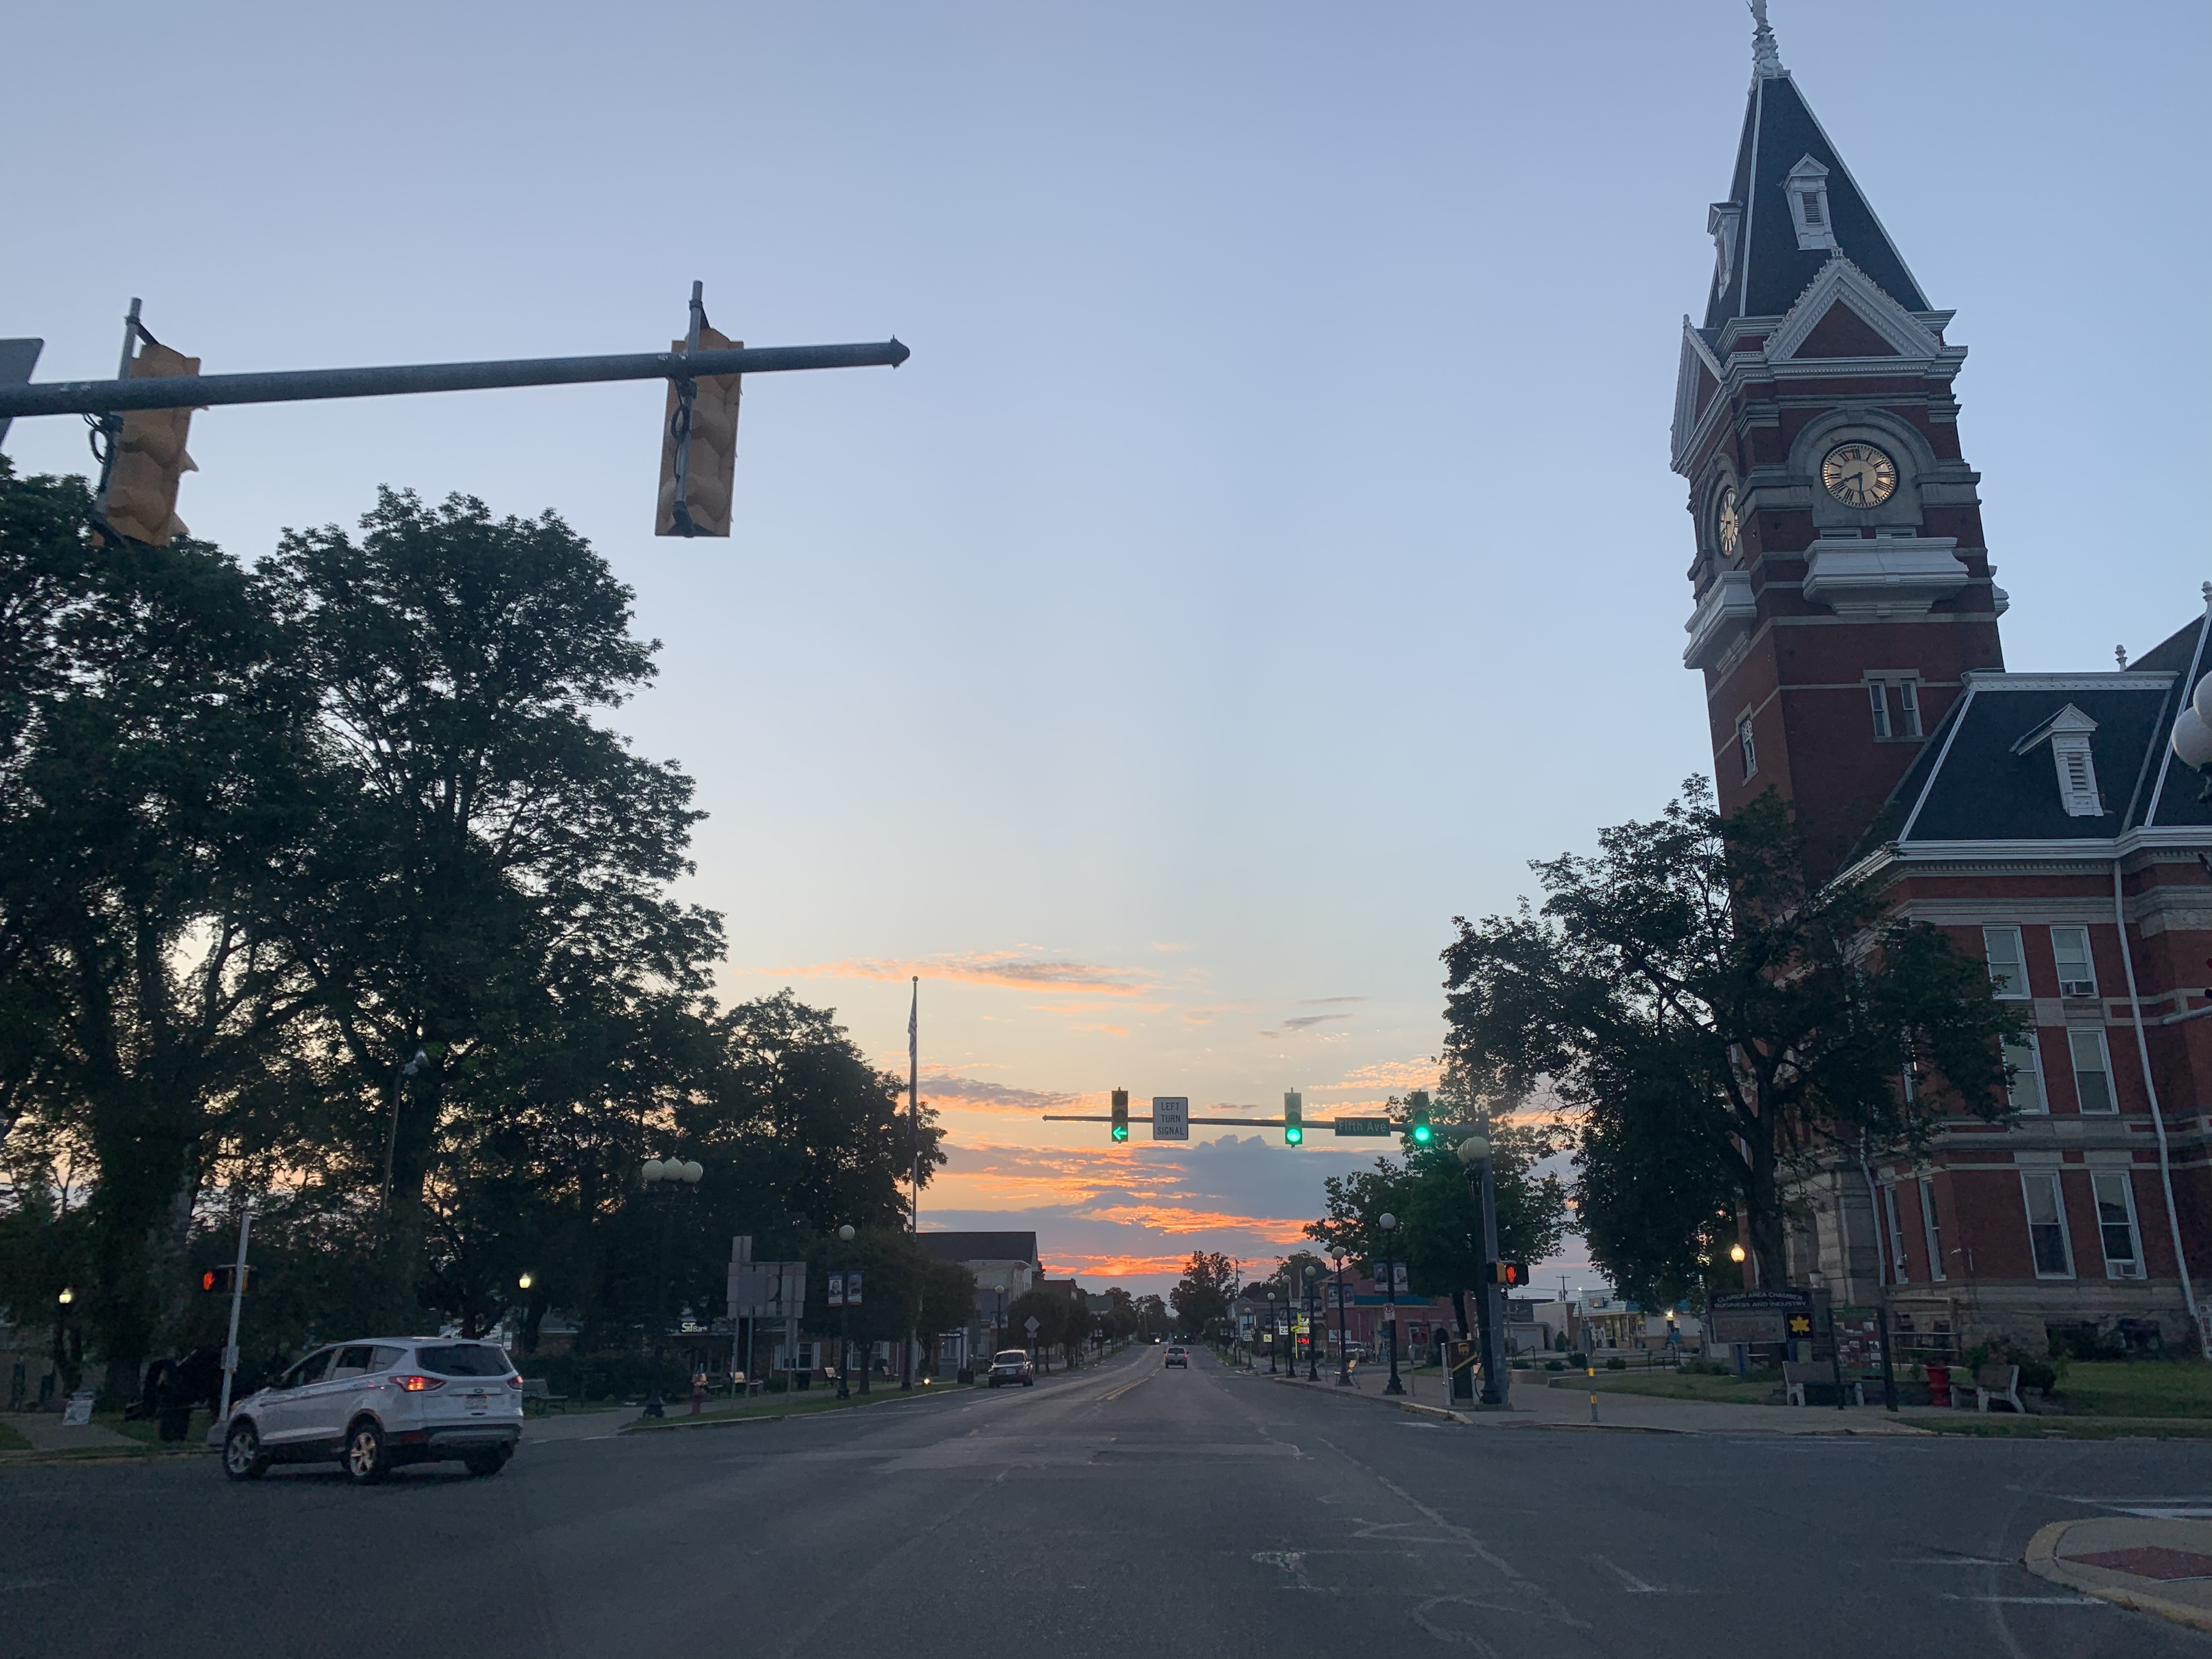 The Clarion County Courthouse majestically sits on the corner of 5th and Main in the early evening hours. Photo submitted by Alize Martinez-Sullenberger.